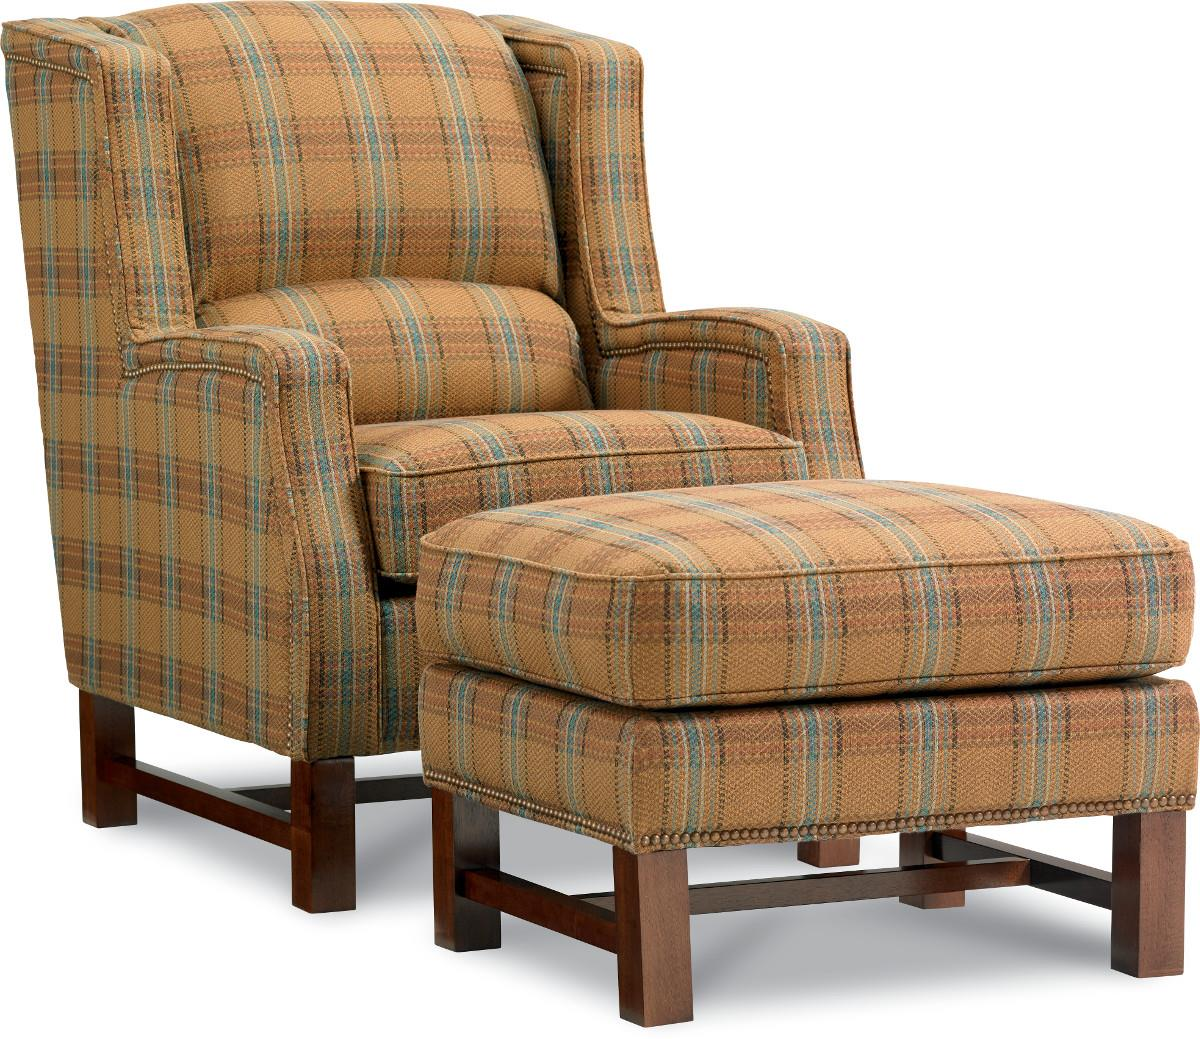 Chairs Chair and Ottoman by La-Z-Boy at Jordan's Home Furnishings